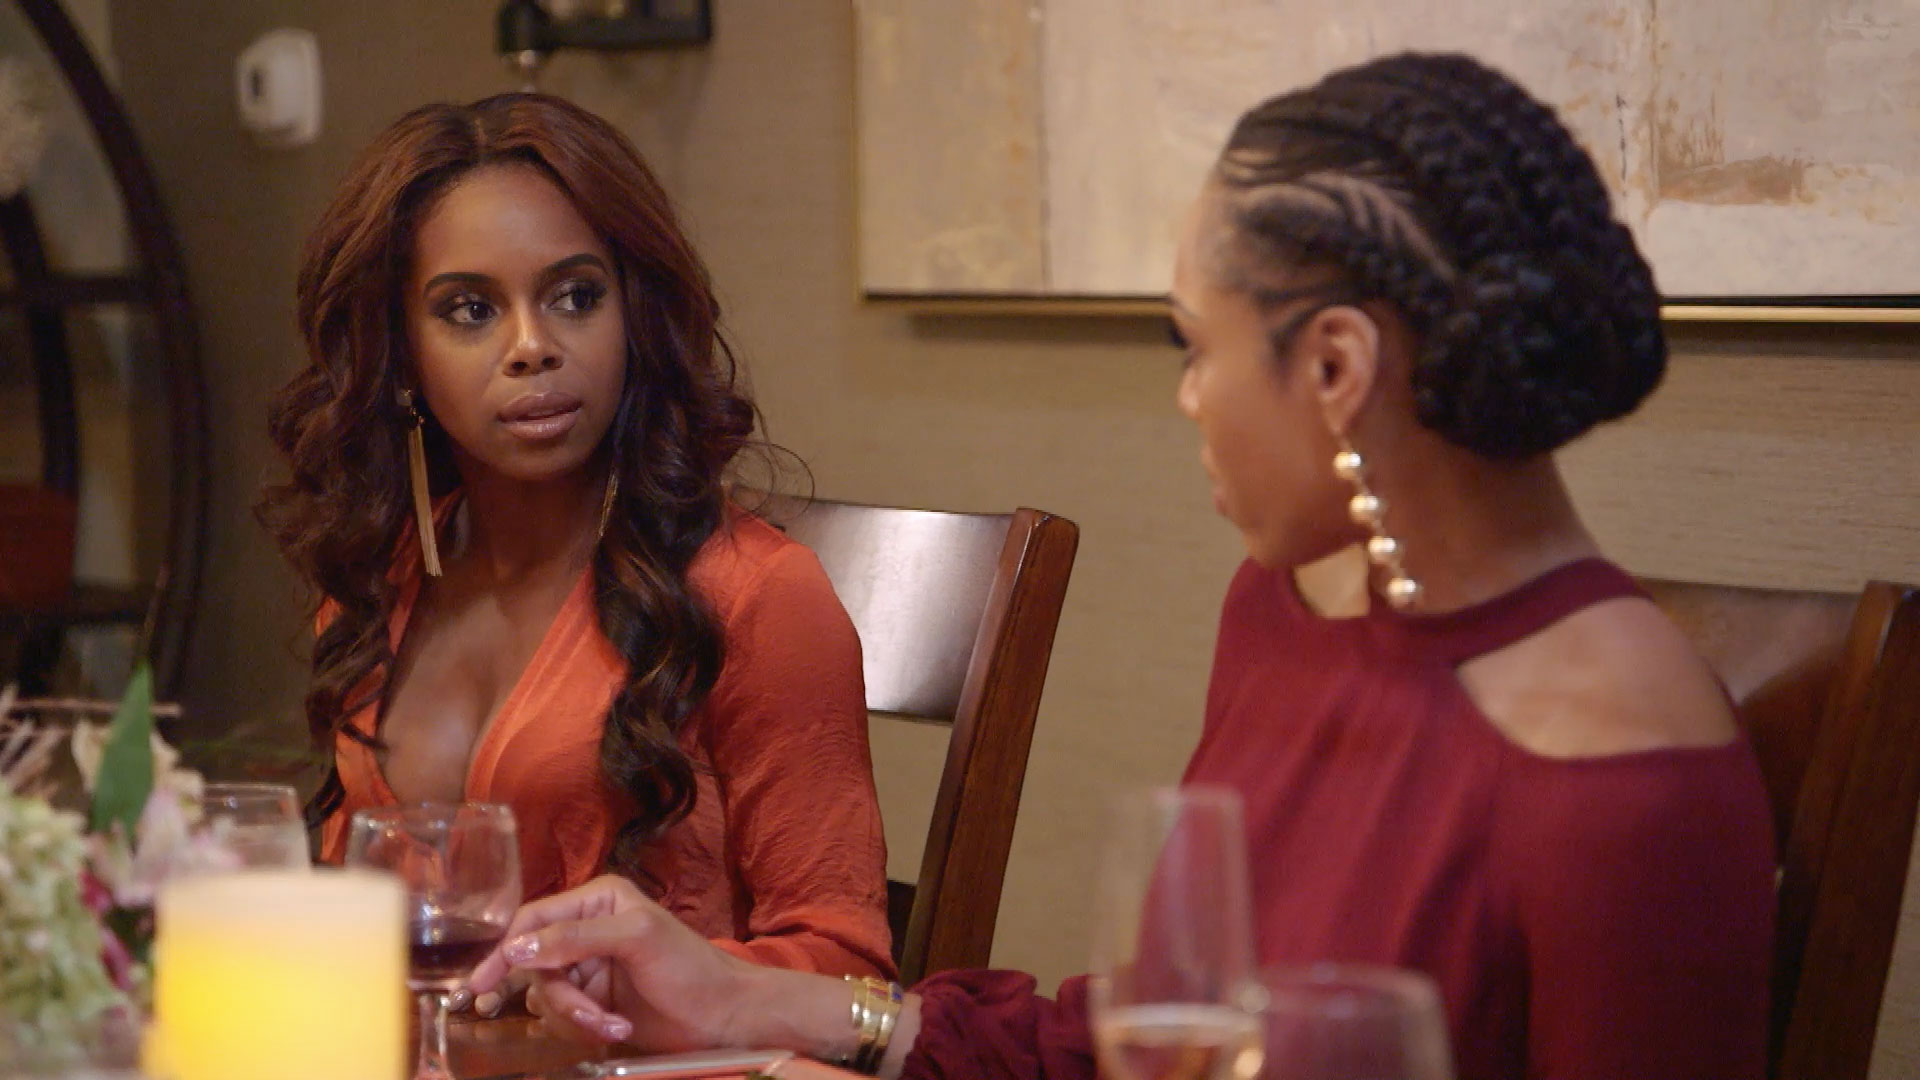 rhop-monique-wanted-to-apologize-to-candiace-dillard-before-she-pressed-charges-karen-huger-calls-out-robyn-dixon